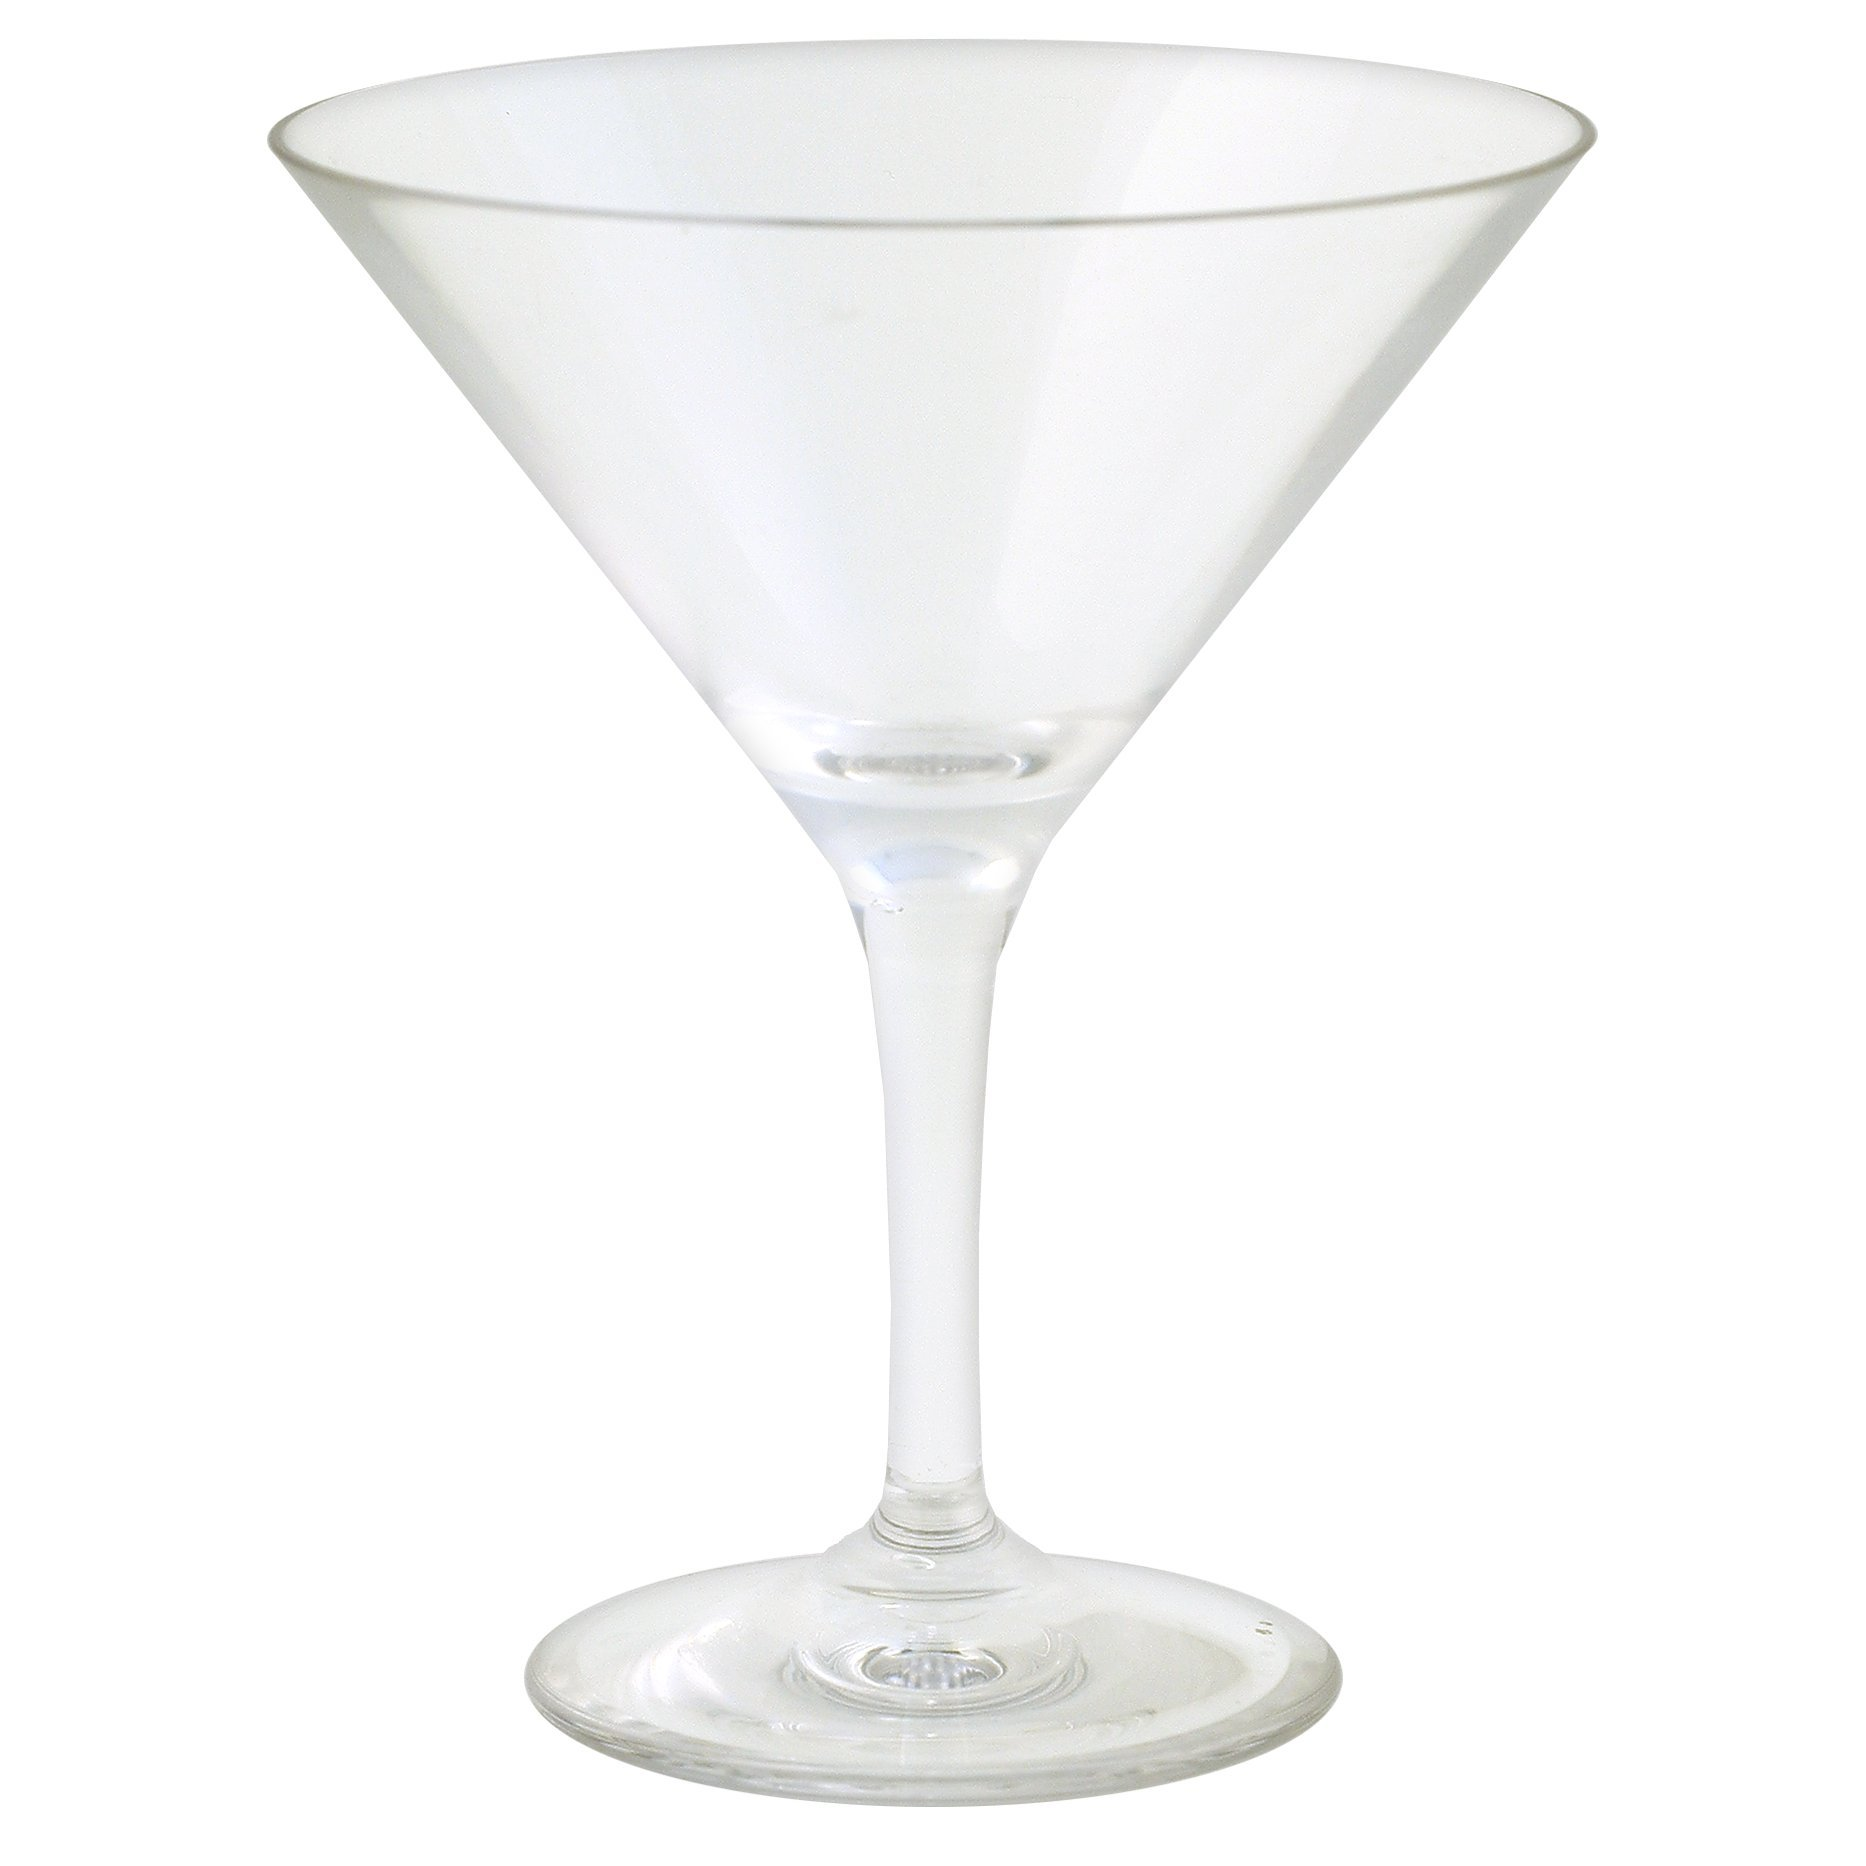 Strahl Martini Glasses, 10-Ounce, Set of 4